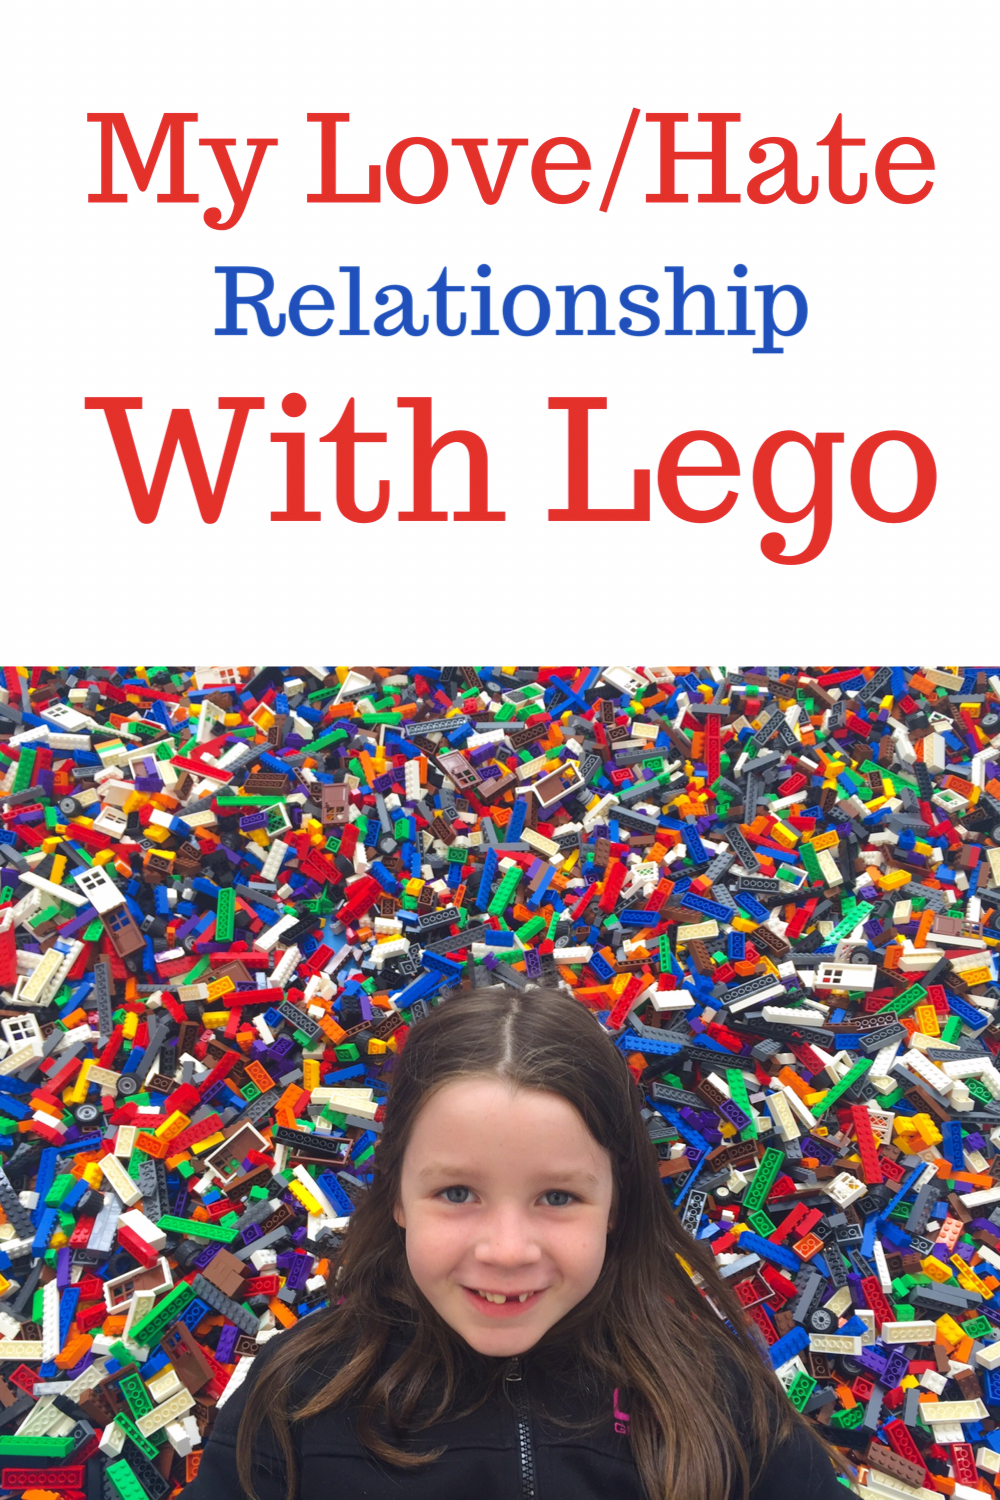 My love hate relationship with Lego